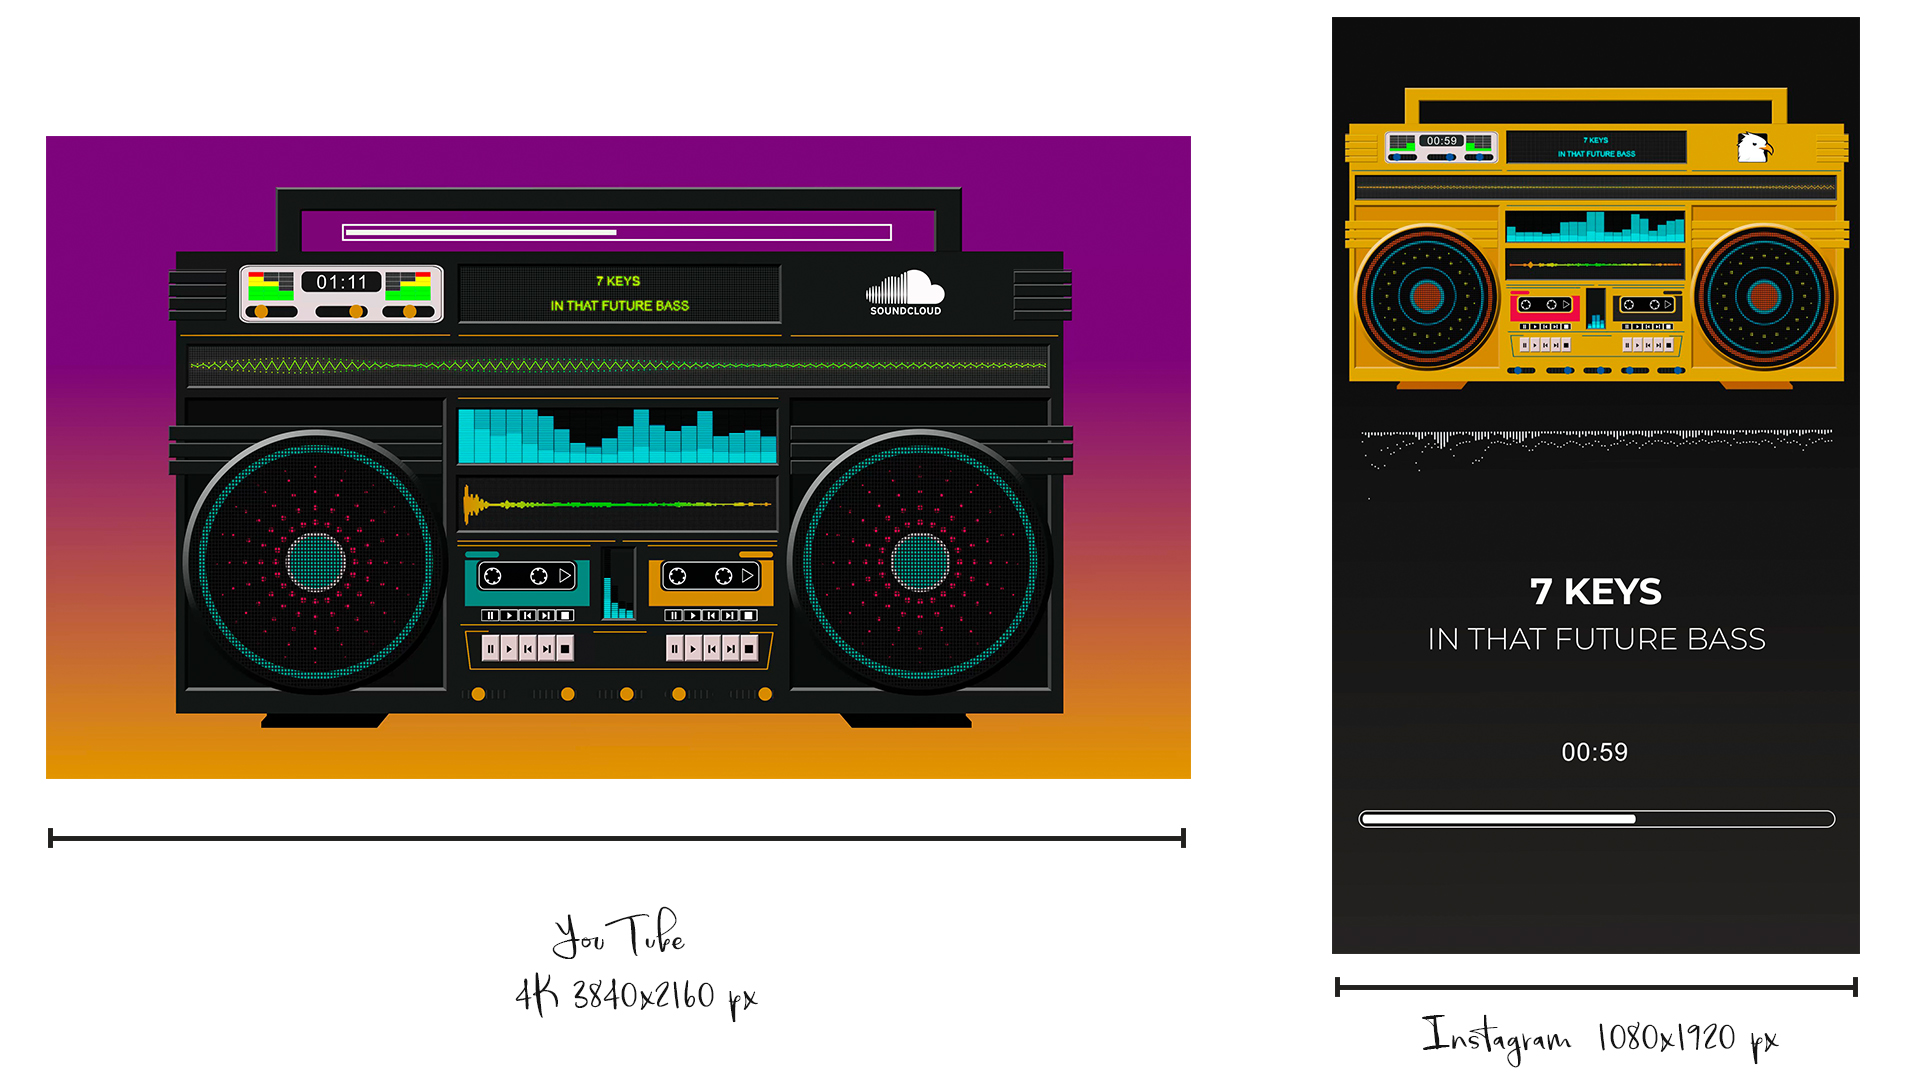 Audio React Spectrum Visualizer with Boombox, Cassette Tape, Vinyl Plate and Vinyl Player Equalizer - 4